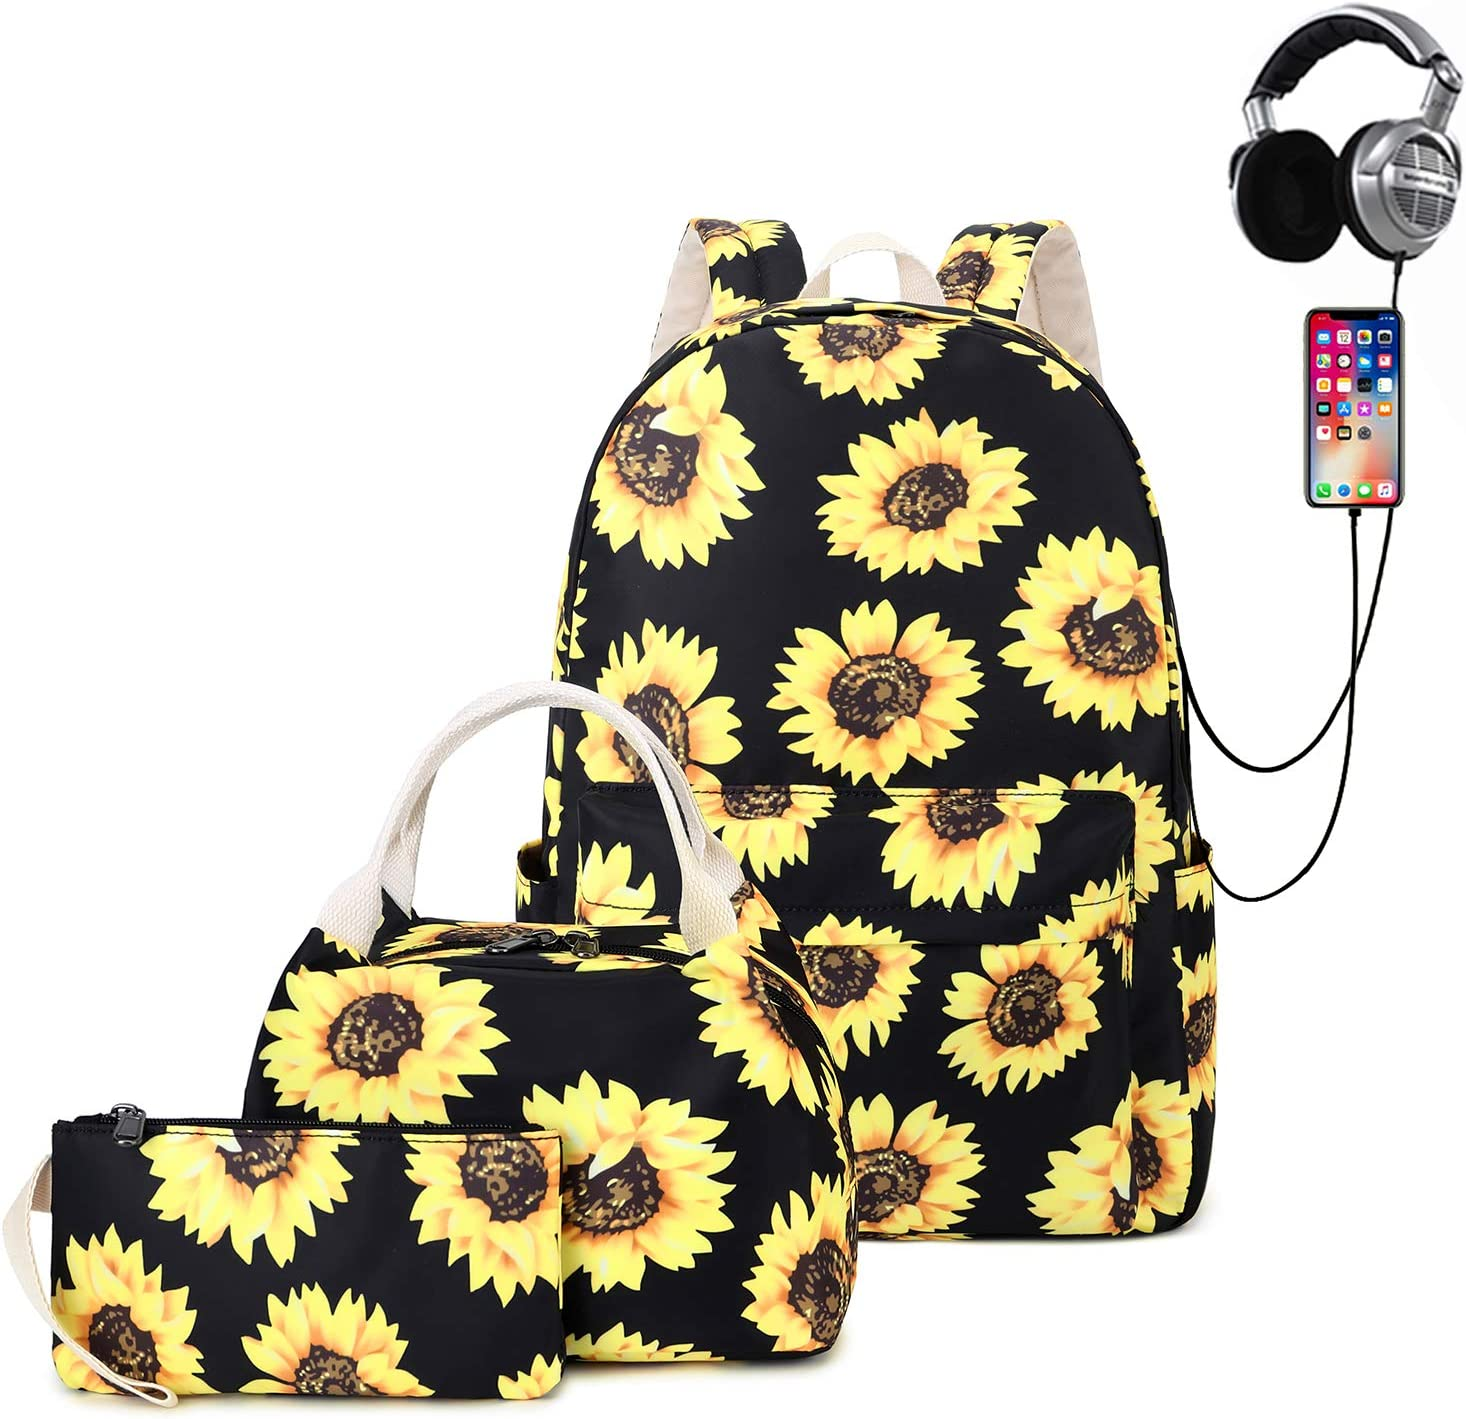 Natayoo Sunflower School Backpack for Teen Girls Lightweight Water Resistant Laptop Backpacks with Lunch Bag and Pencil Case,Large